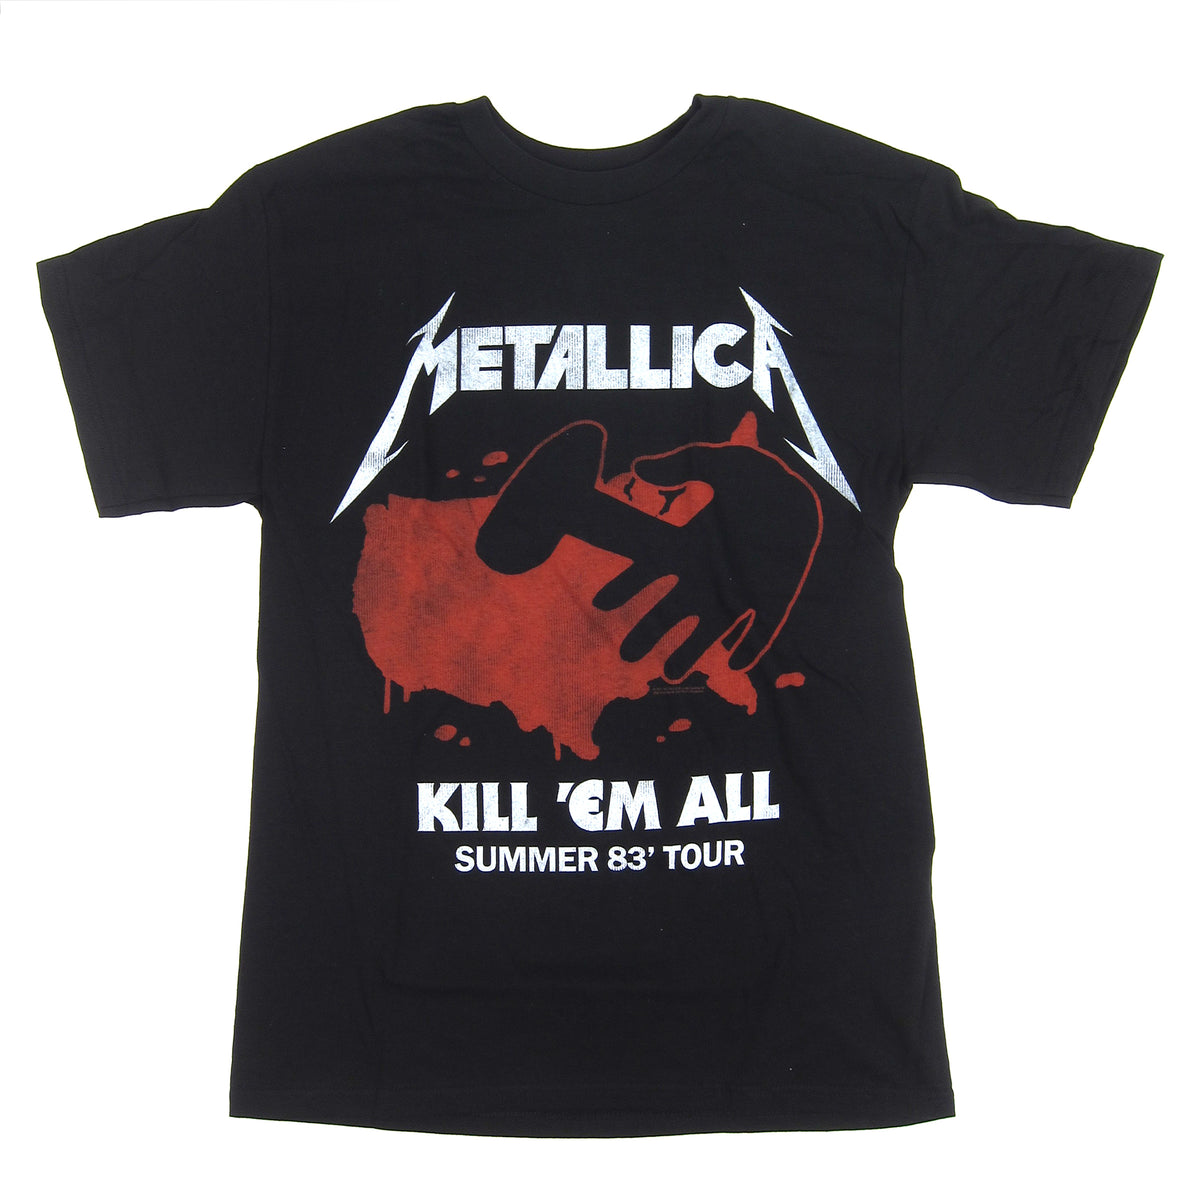 Metallica: Kill Em All Summer '83 Tour Shirt - Black